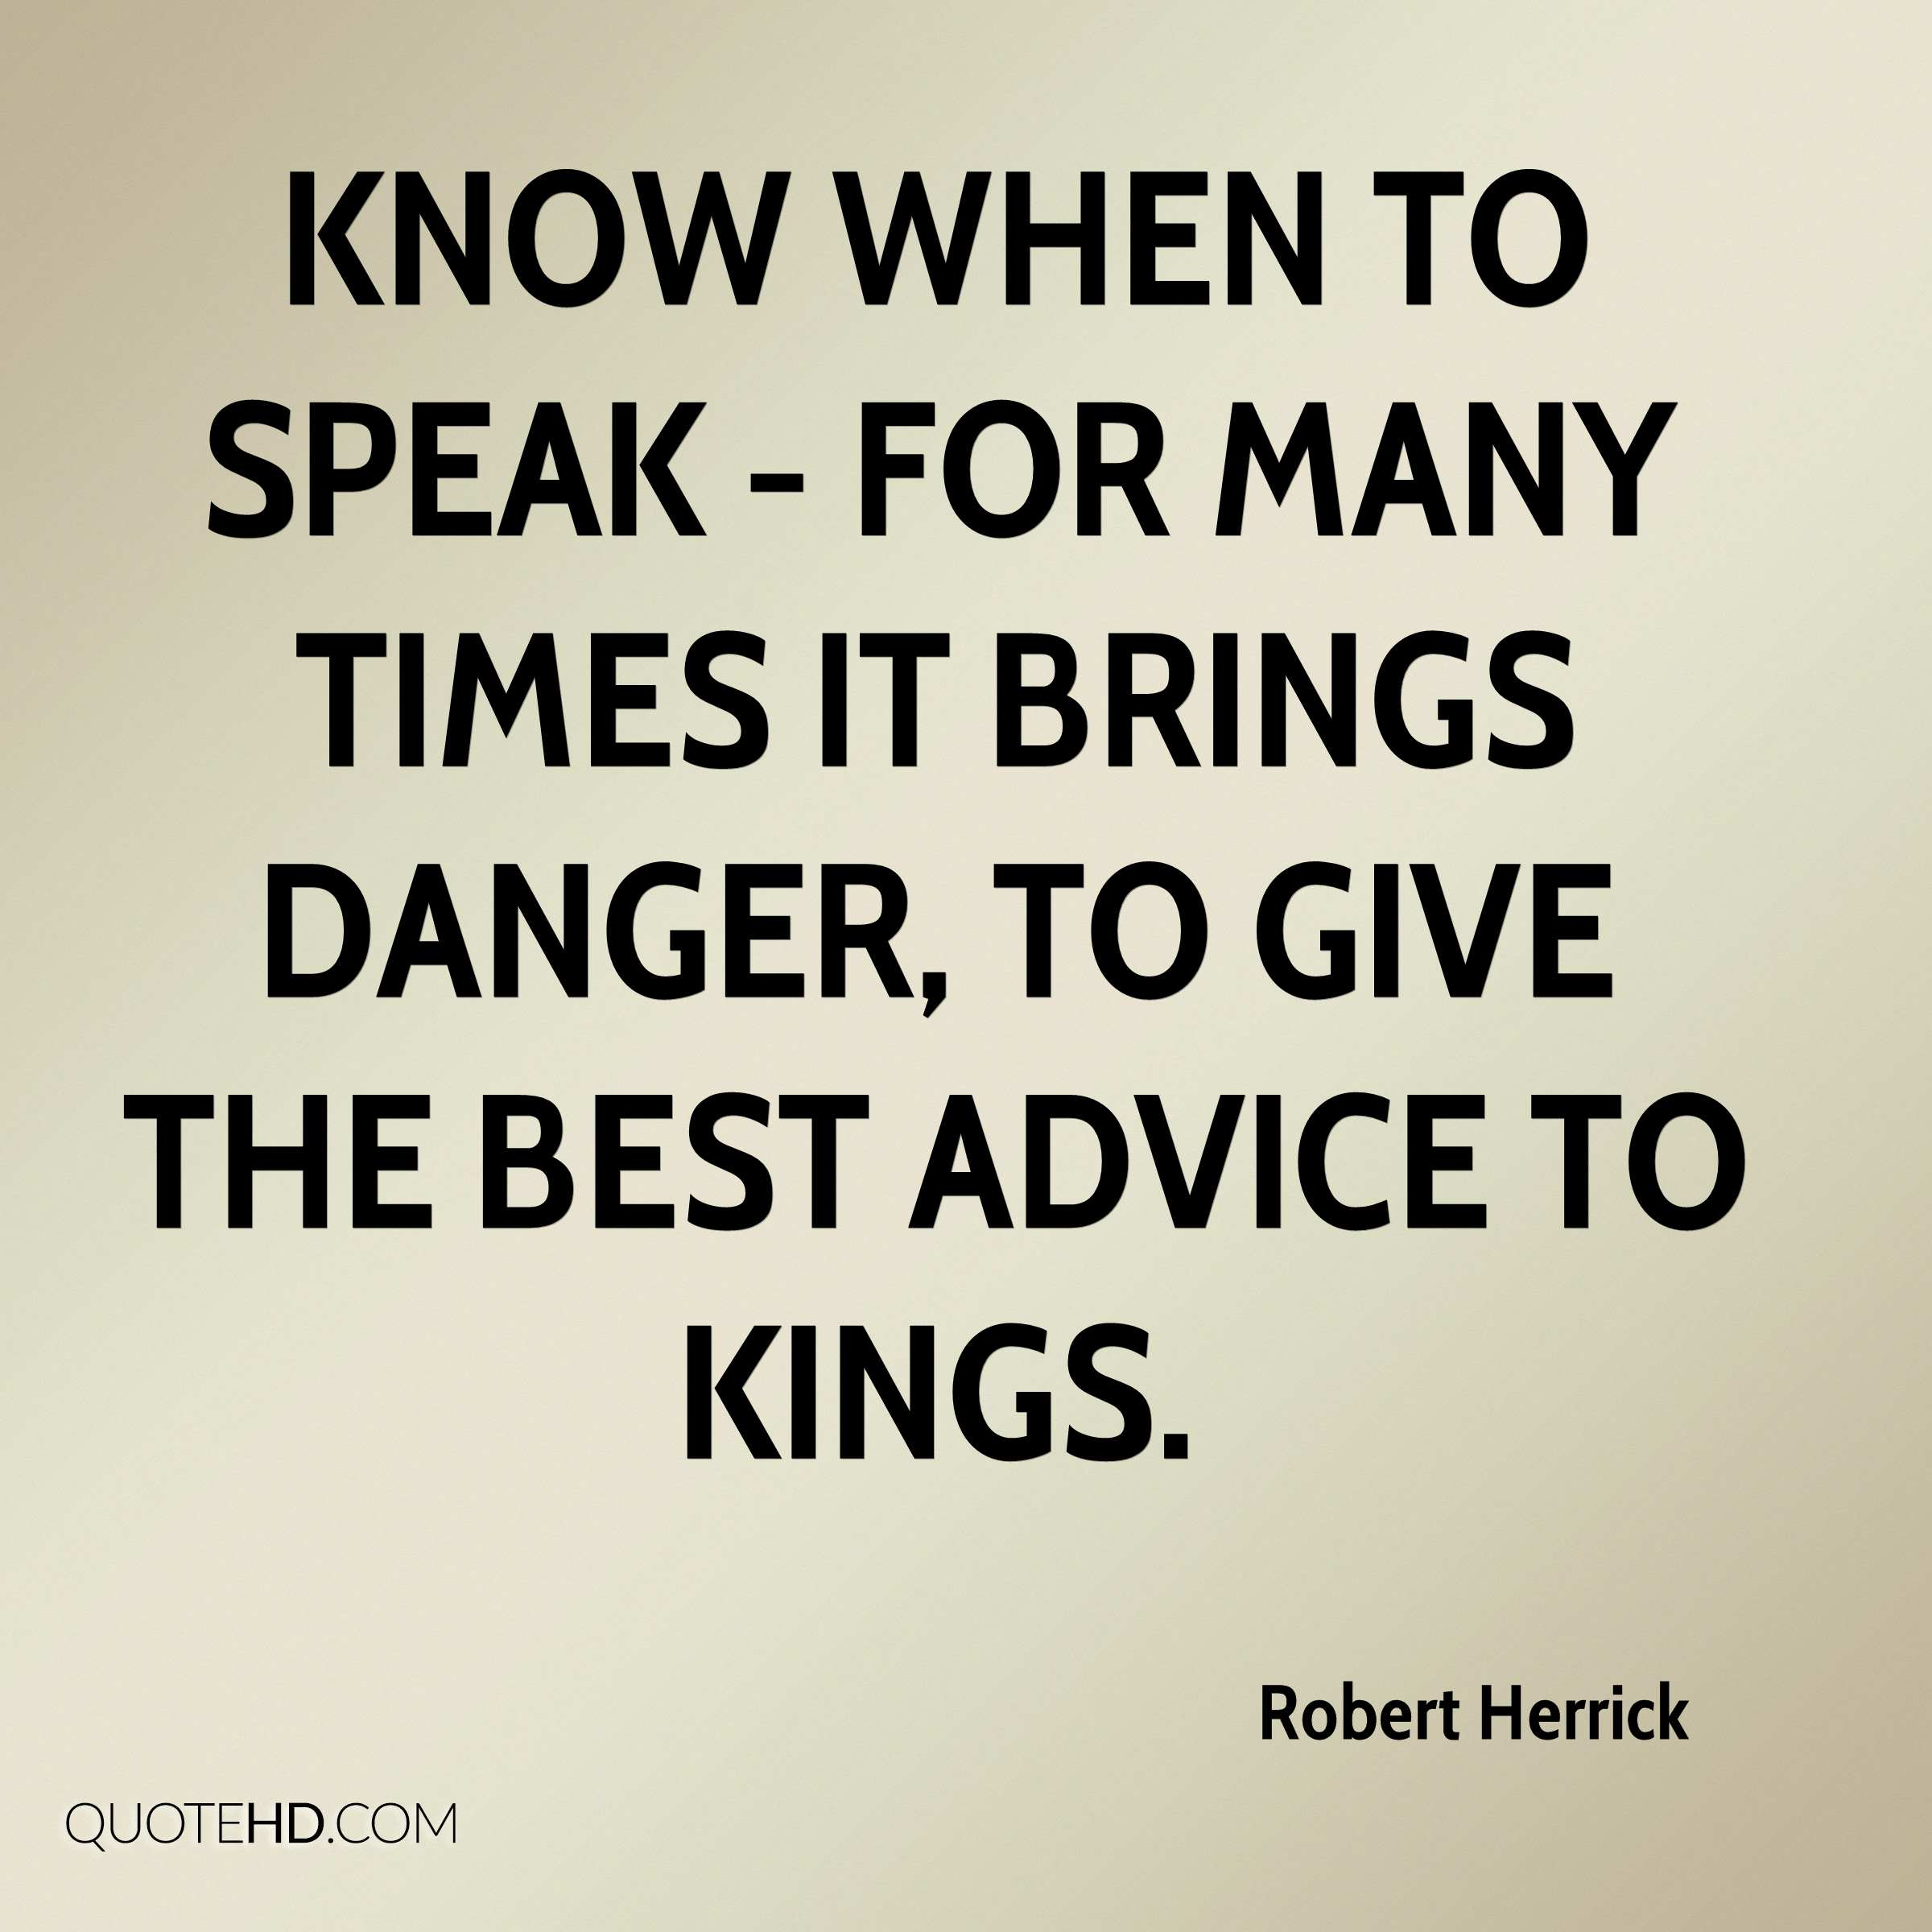 Know when to speak - for many times it brings danger, to give the best advice to kings.